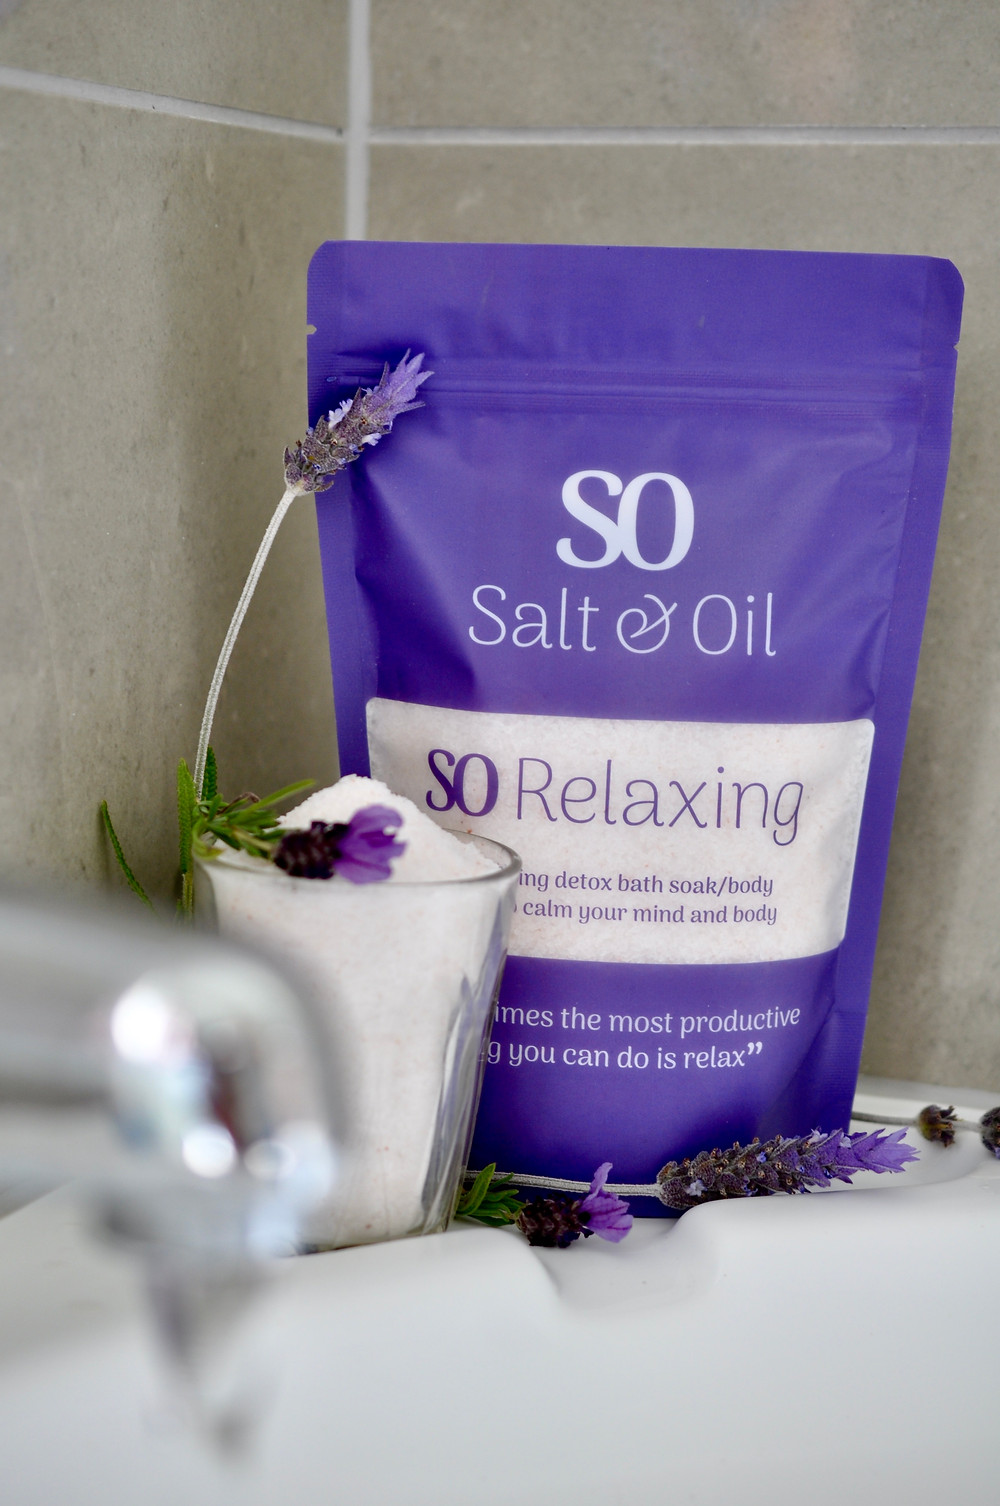 pour a relaxing bath with Salt & Oil and enjoy it as a body scrub too